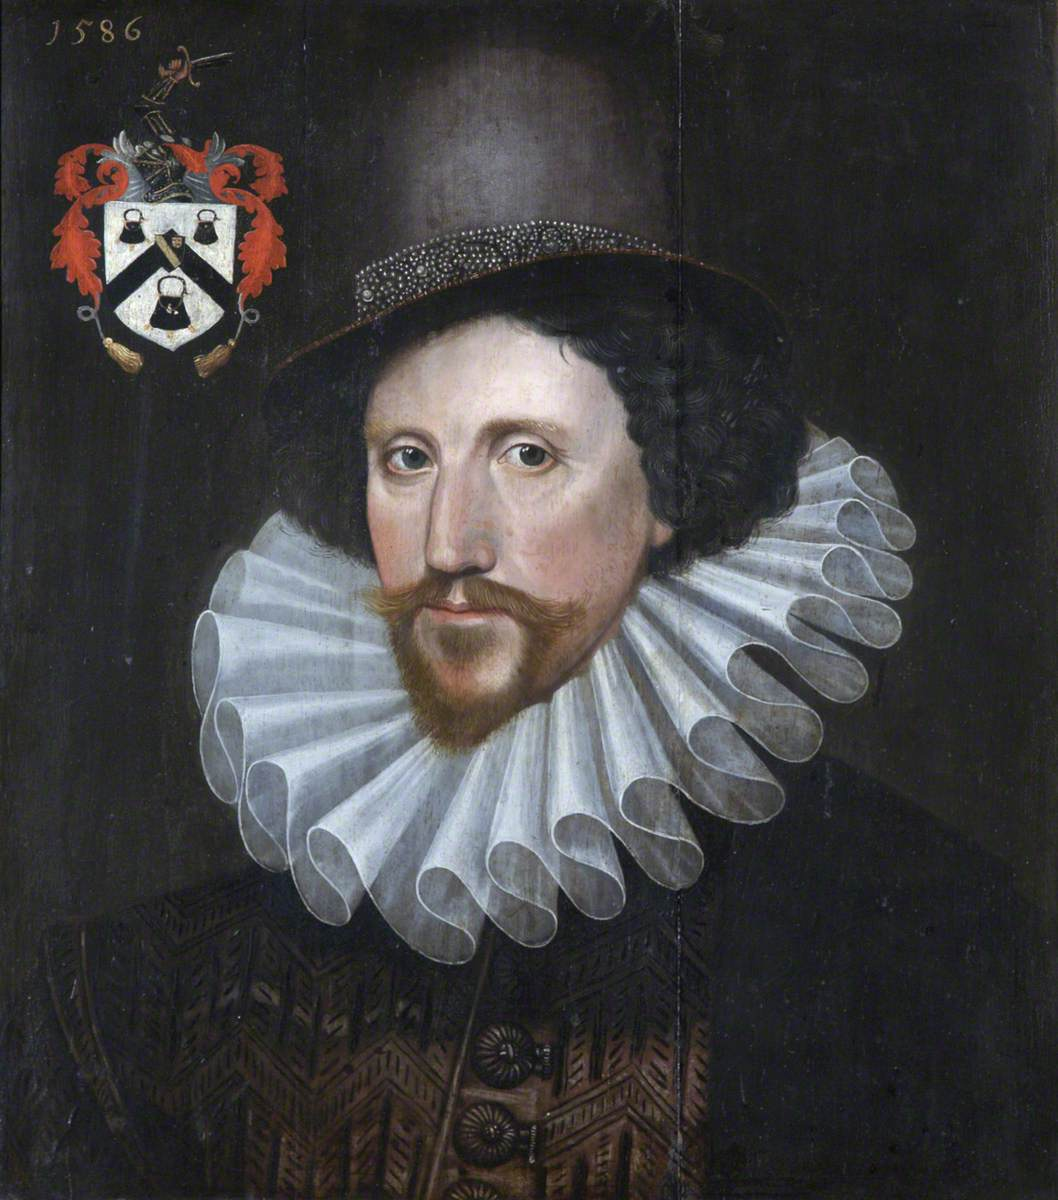 Sir Henry Palmer (c.1550–1611), Comptroller of the Navy